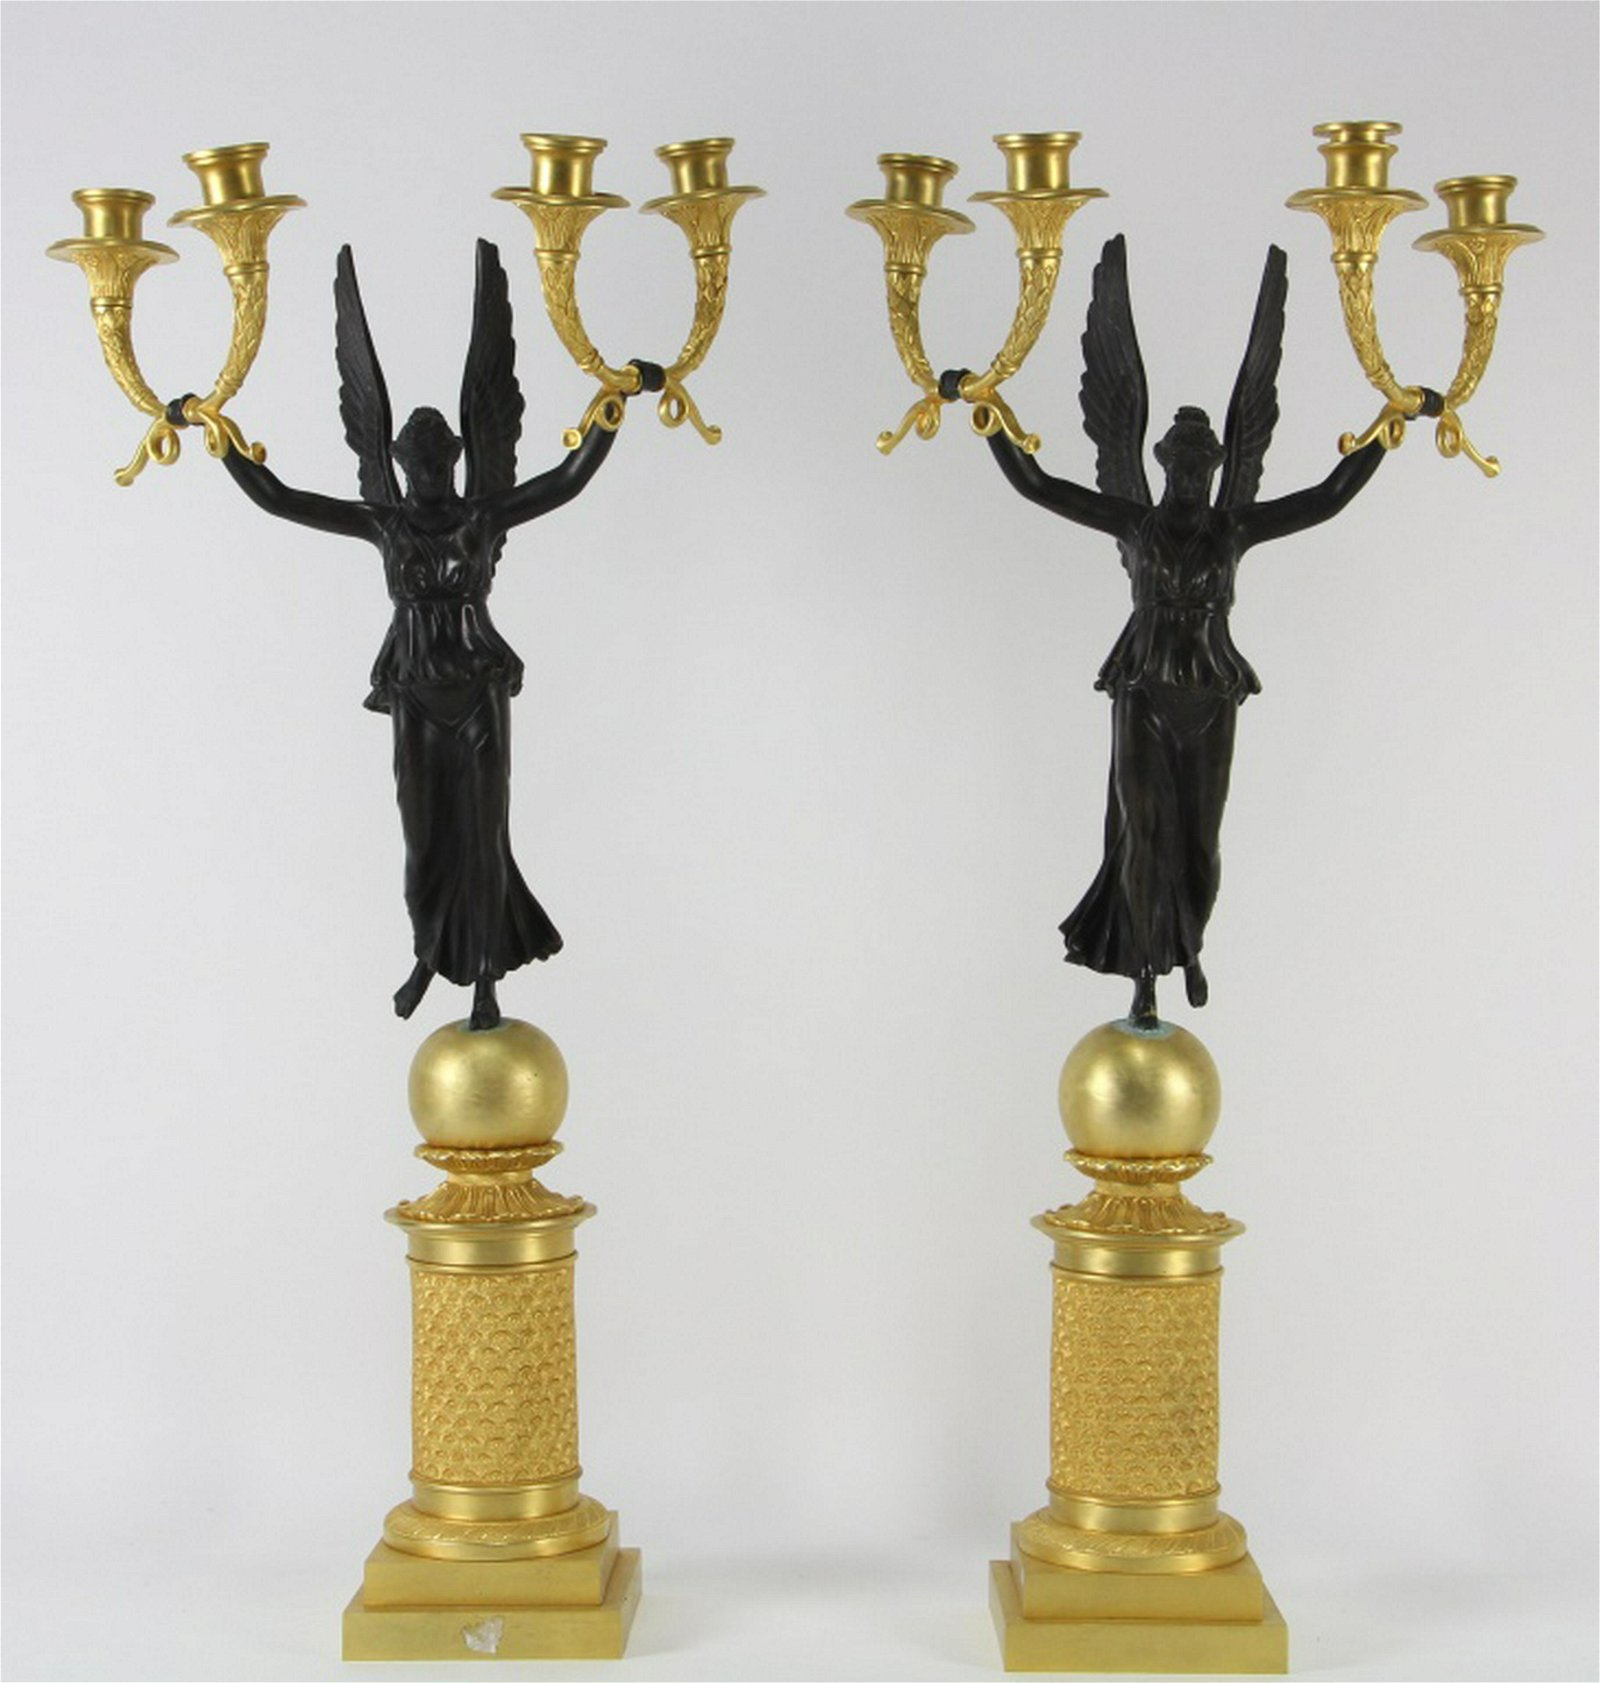 PAIR OF BRONZE WINGED VICTORY CANDELABRA